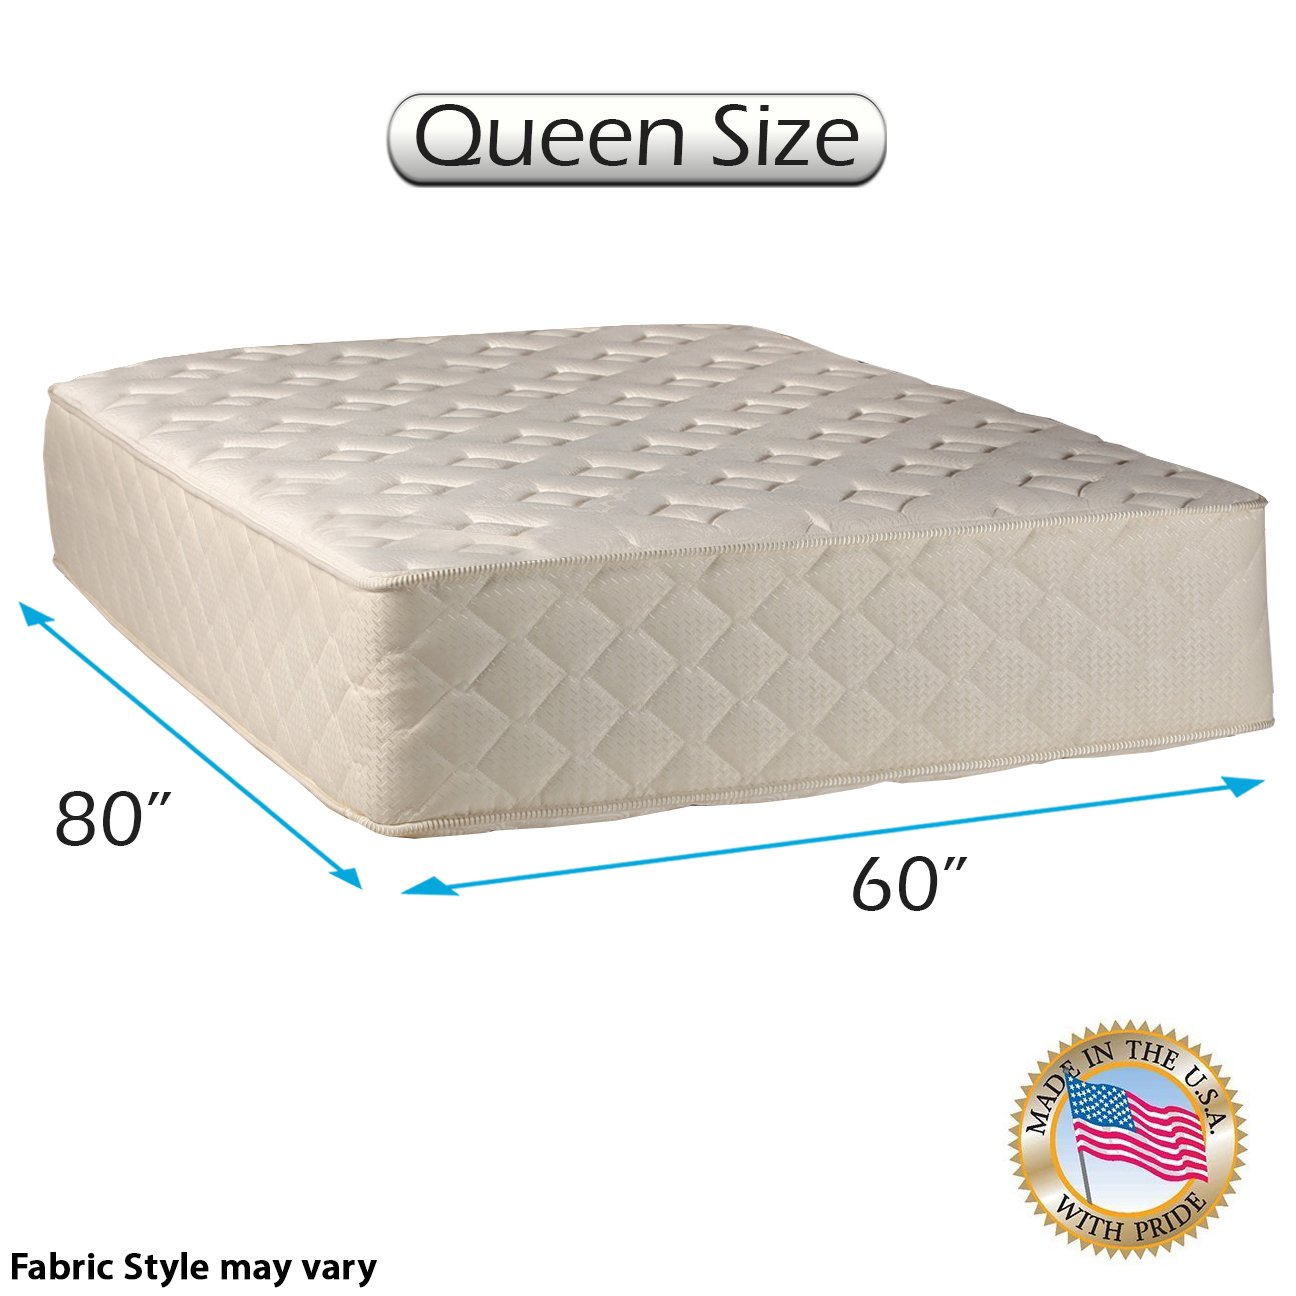 Highlight Luxury Firm Queen Size 60 x80 x14 Mattress Only – Fully Assembled – Spinal Back Support, Innerspring Coils, Premium Edge Guards, Longlasting Comfort – by Dream Solutions USA